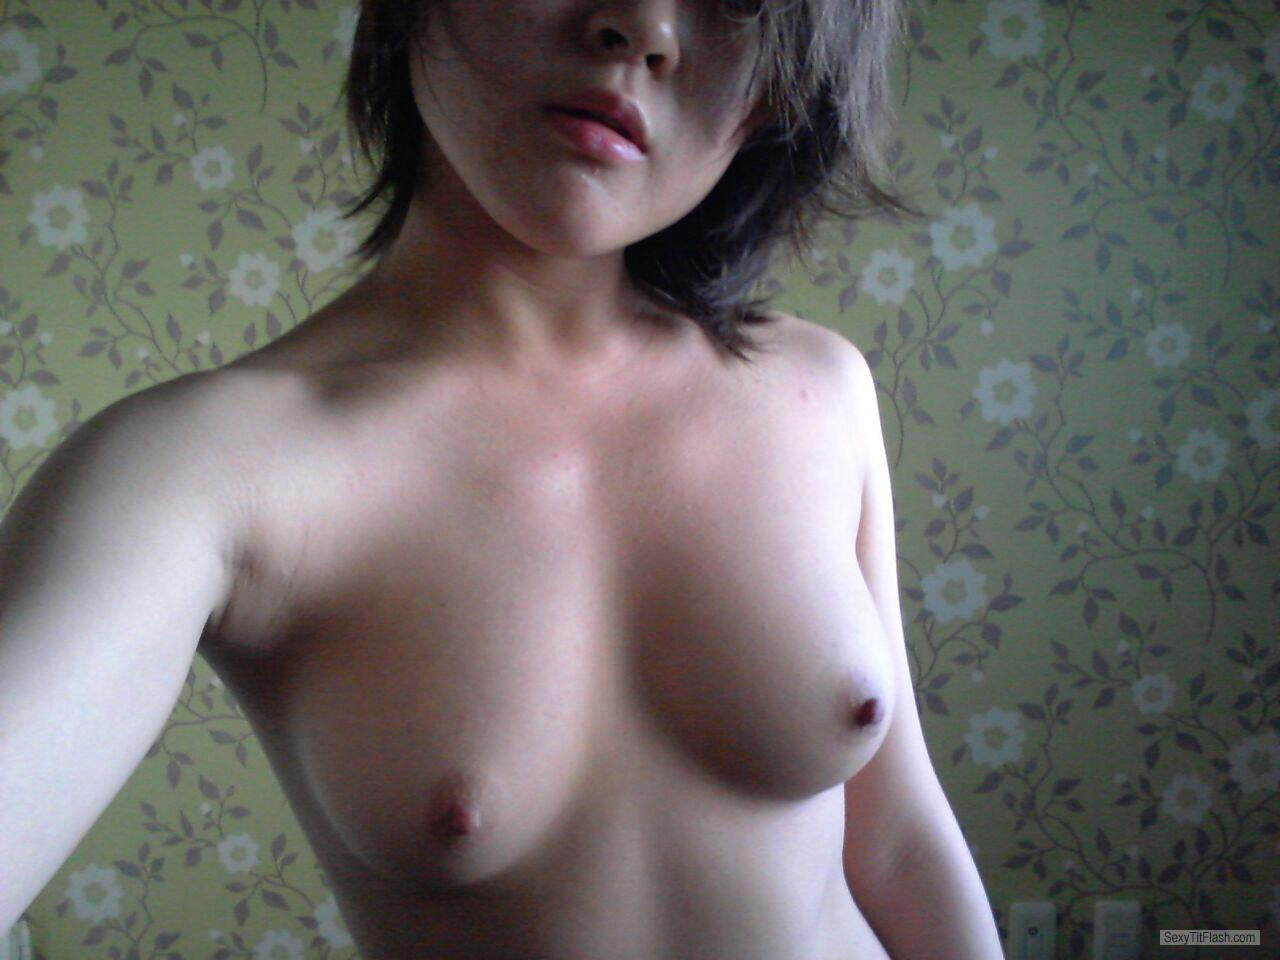 Tit Flash: Ex-Girlfriend's Small Tits (Selfie) - Koreasexy from United Kingdom